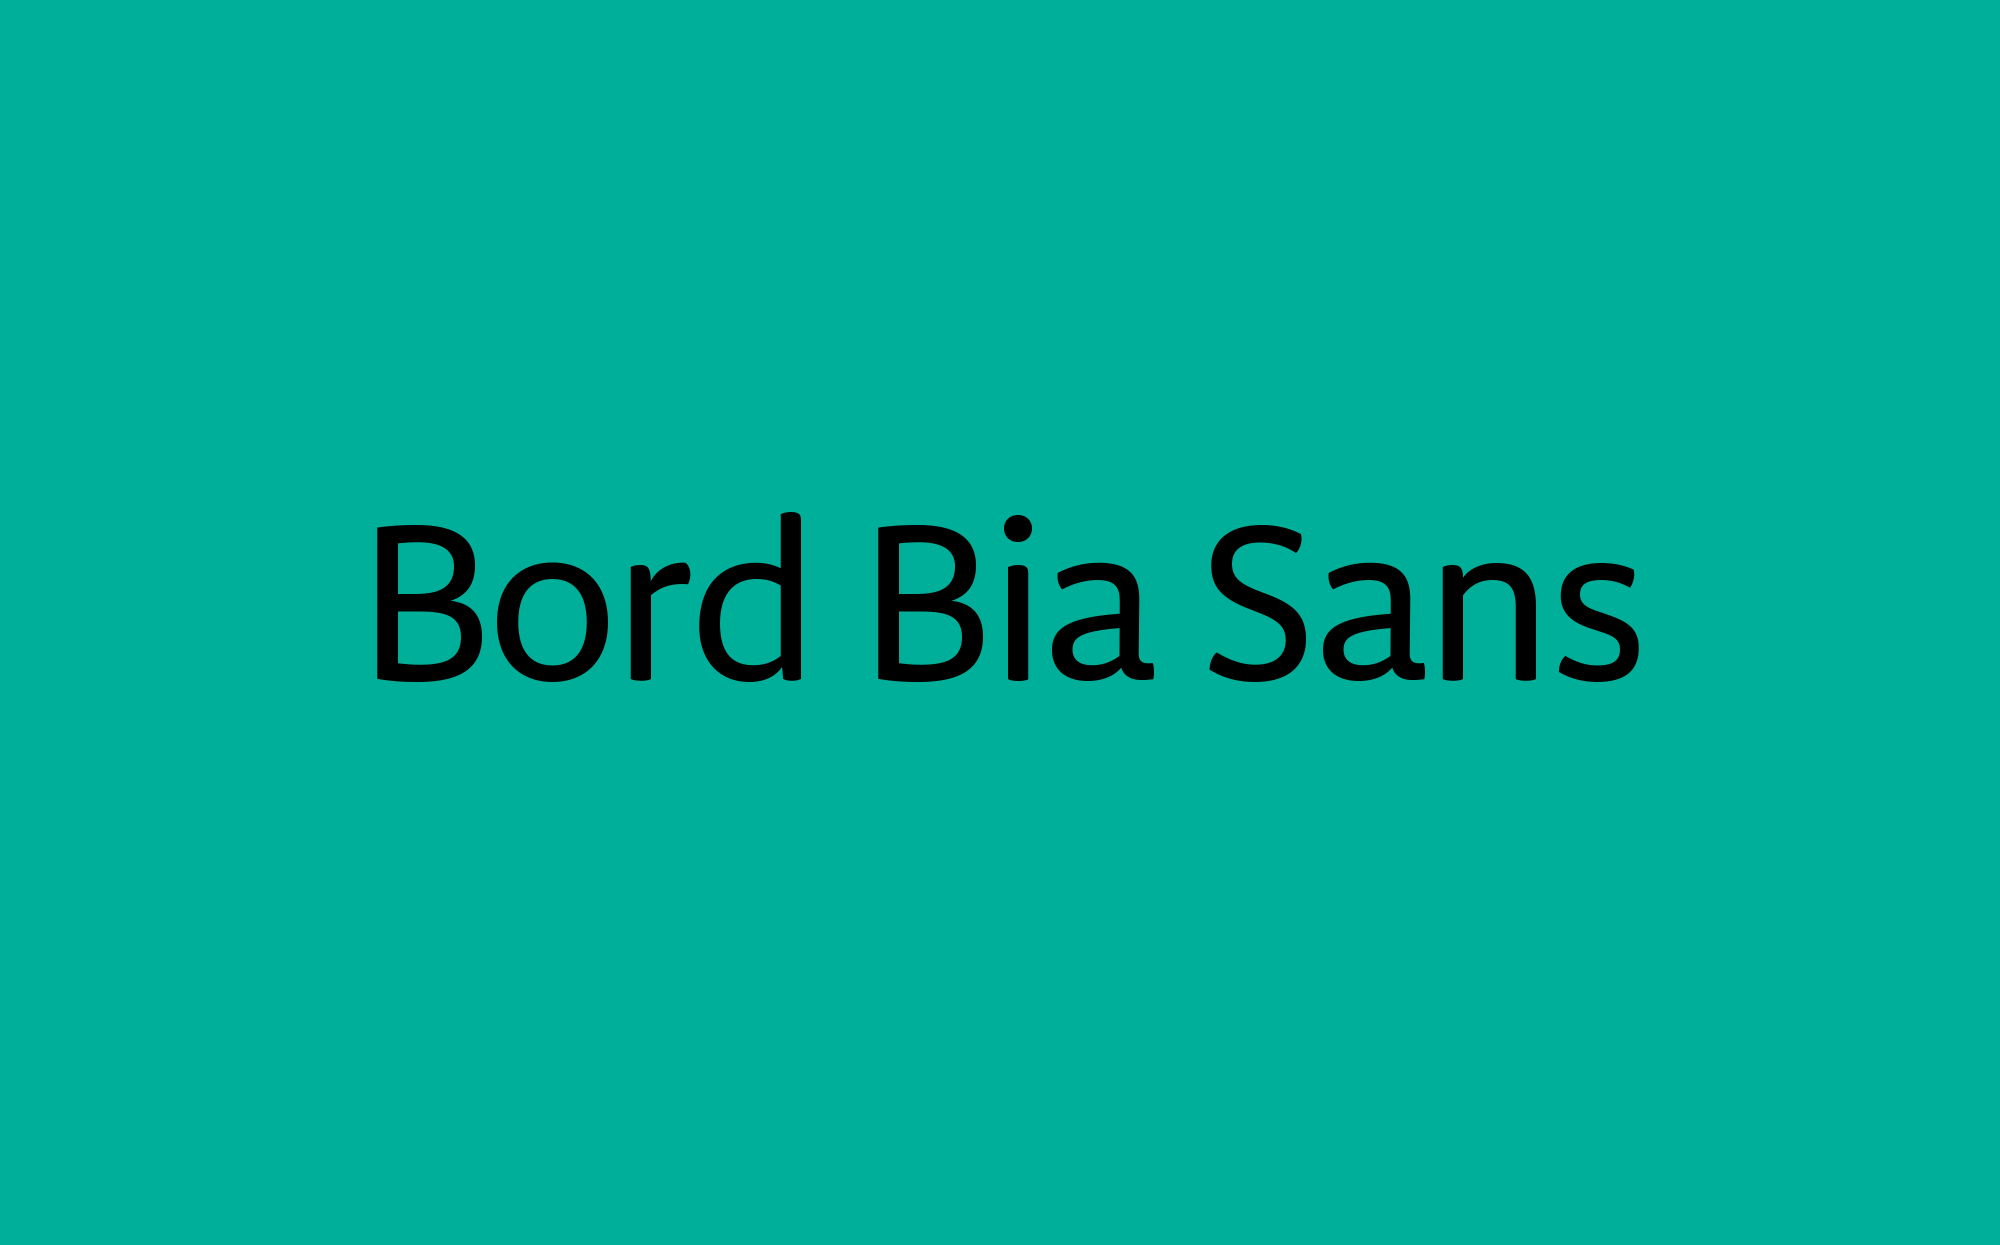 Cover image: Bord Bia Sans